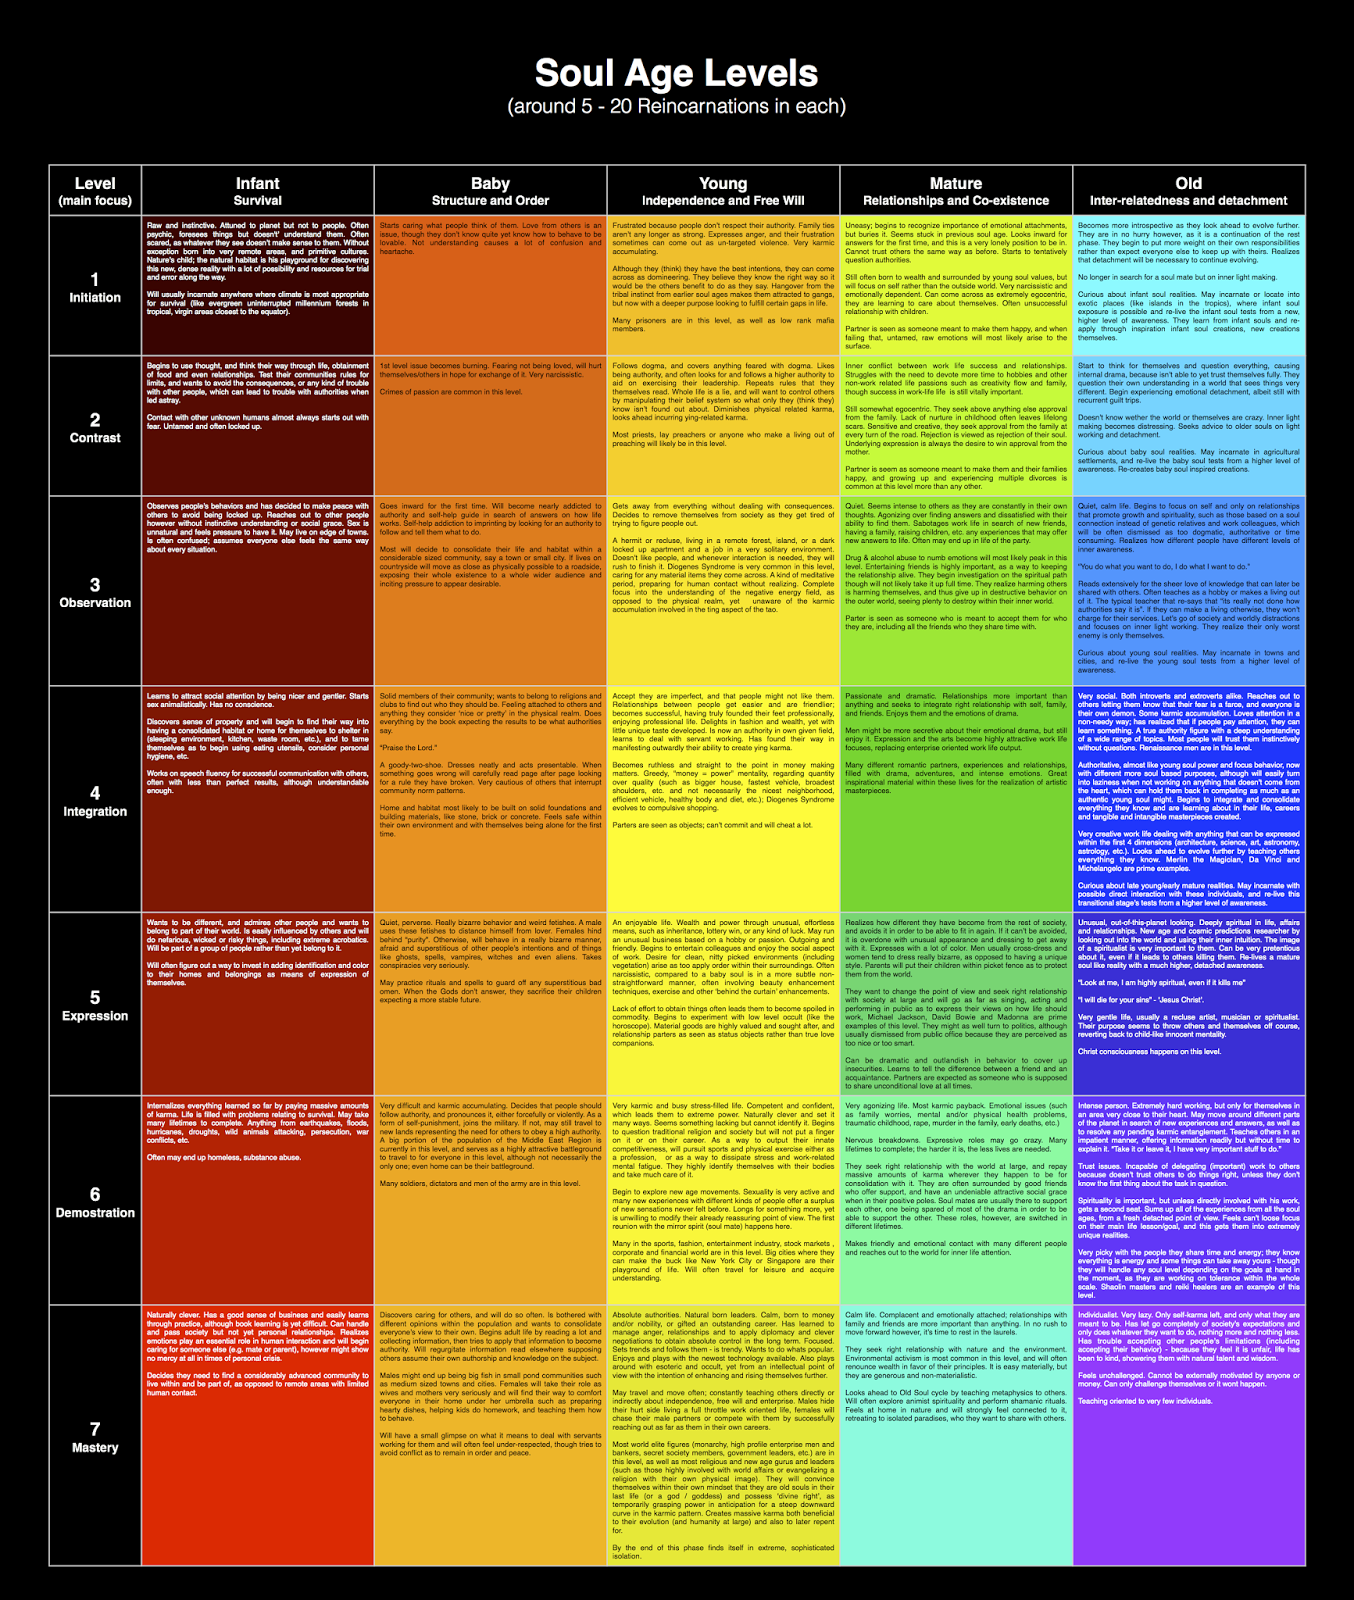 If You Wish To Be More Specific Here Is The 35 Sub Stage Soul Age Chart